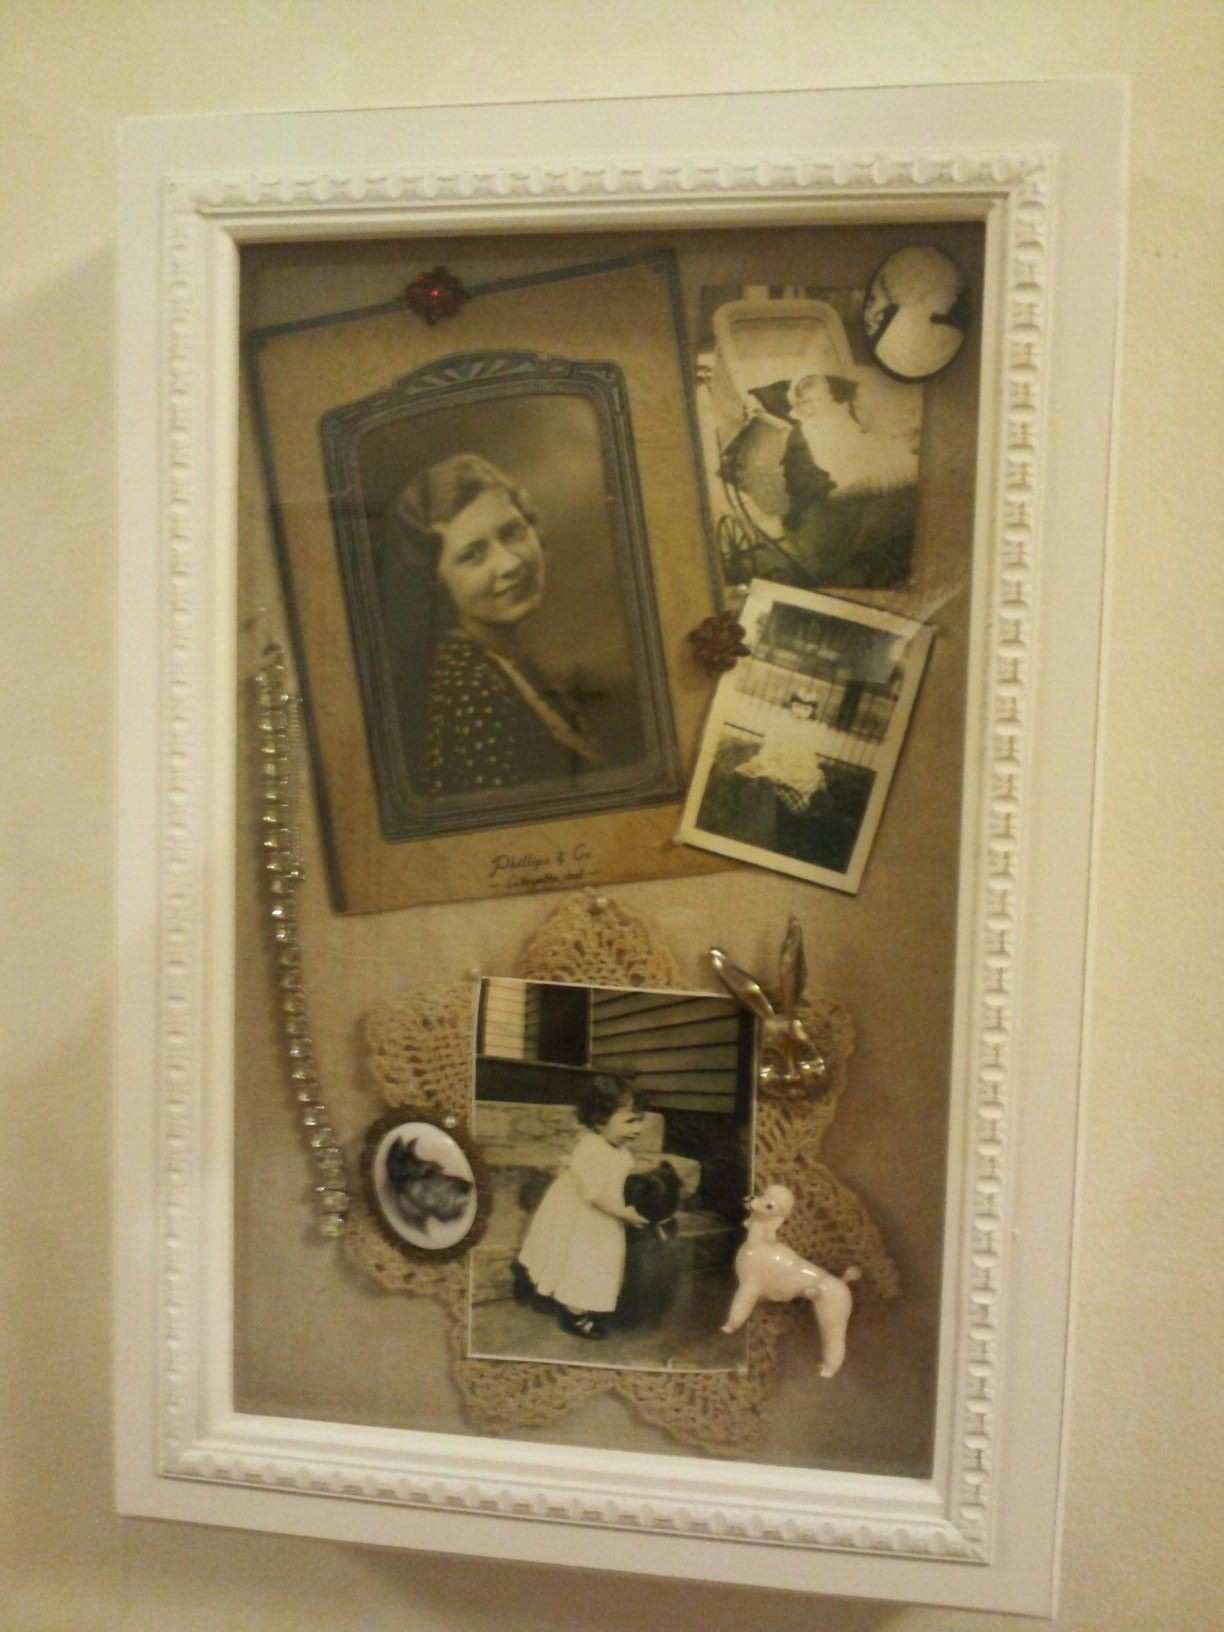 This is the another shadow box I bought at TJ Maxx to put in my